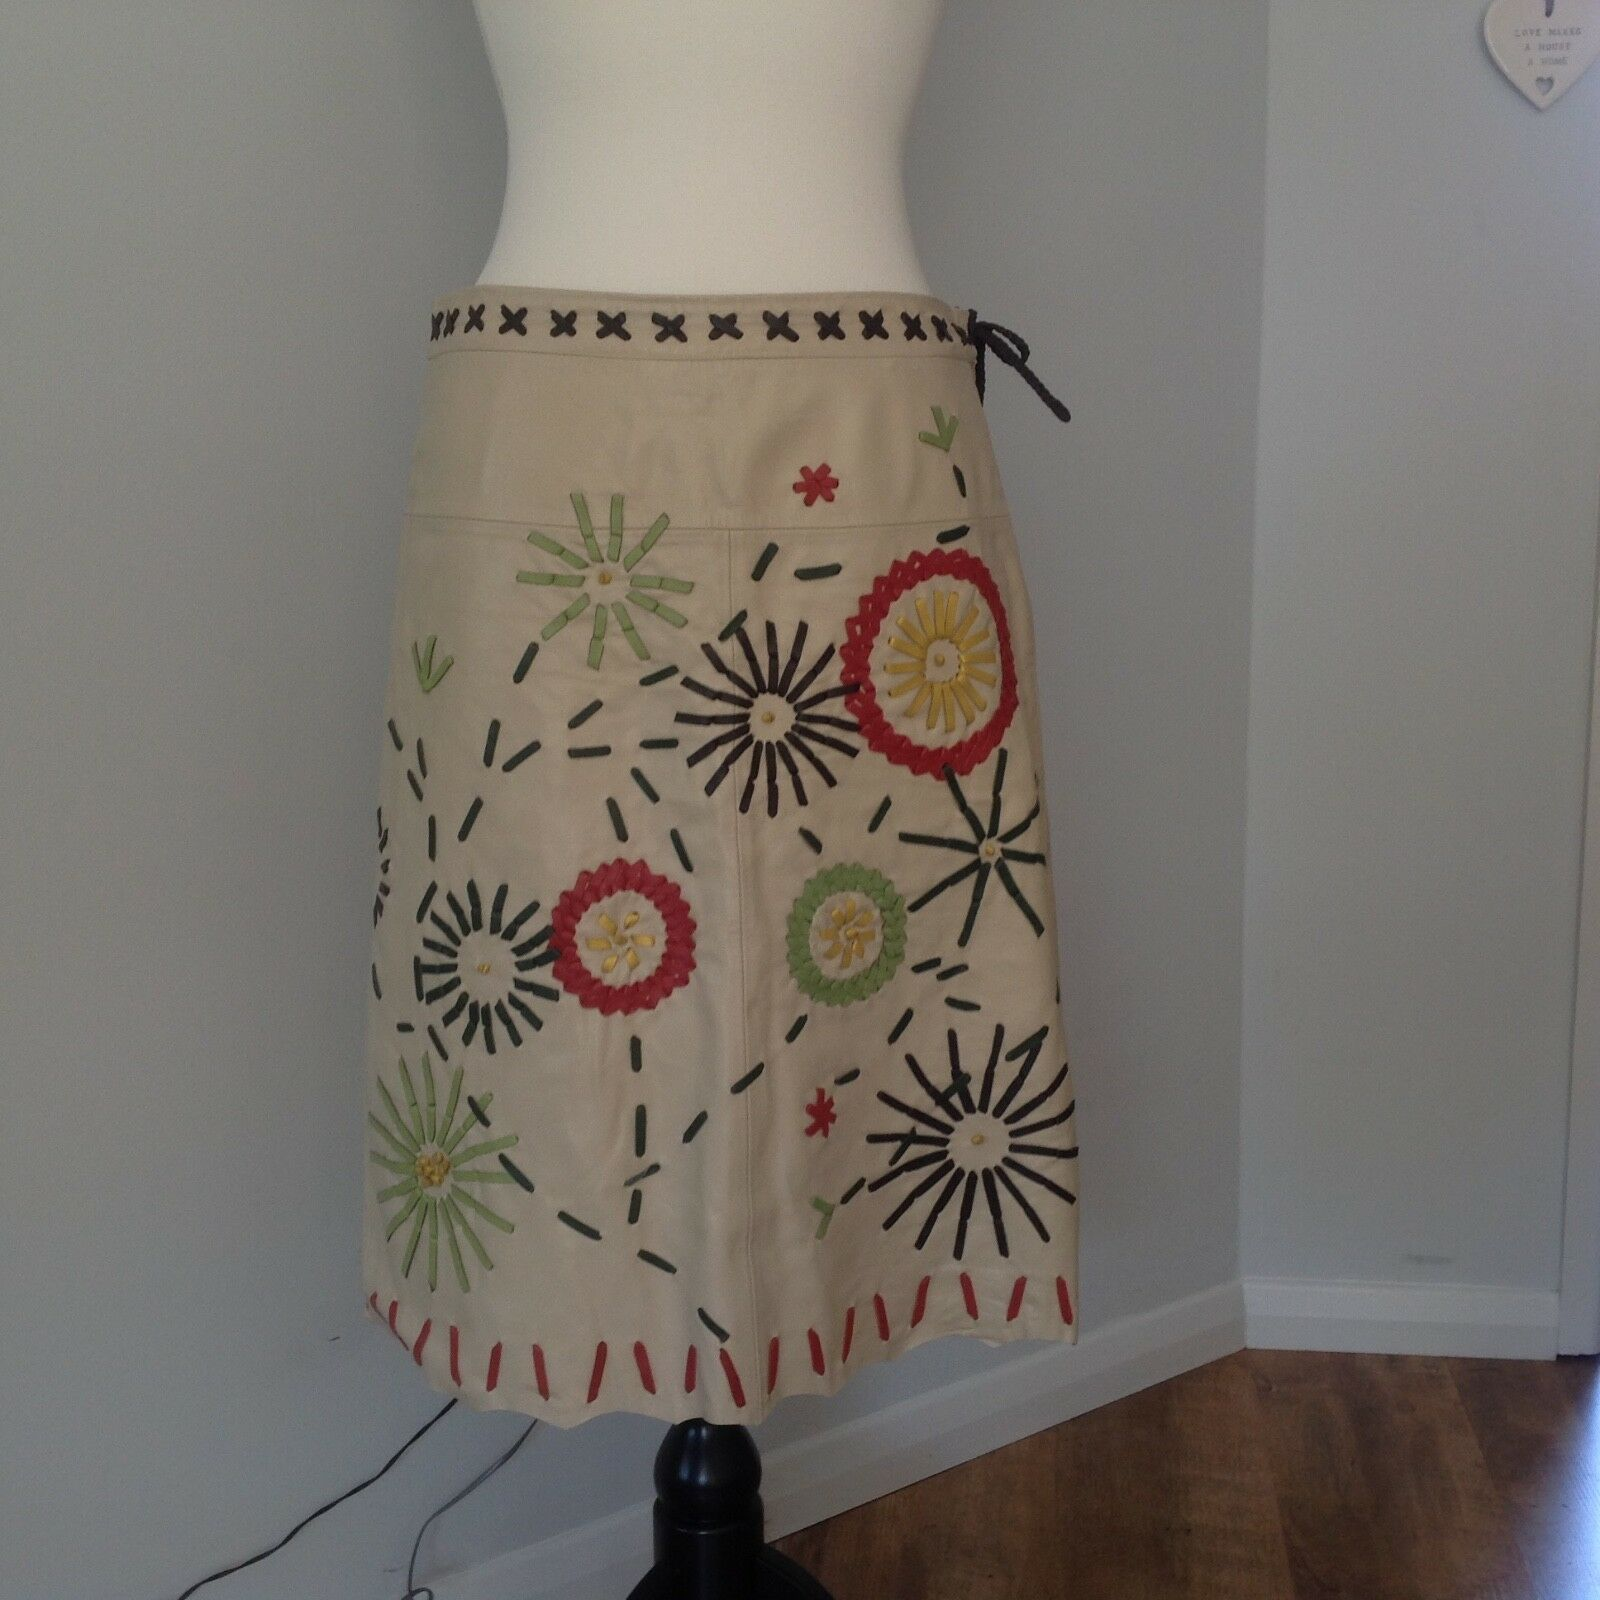 Hoss.Ladies Cream Leather Skirt with Flowers Size 38. U.K. Size 10-12